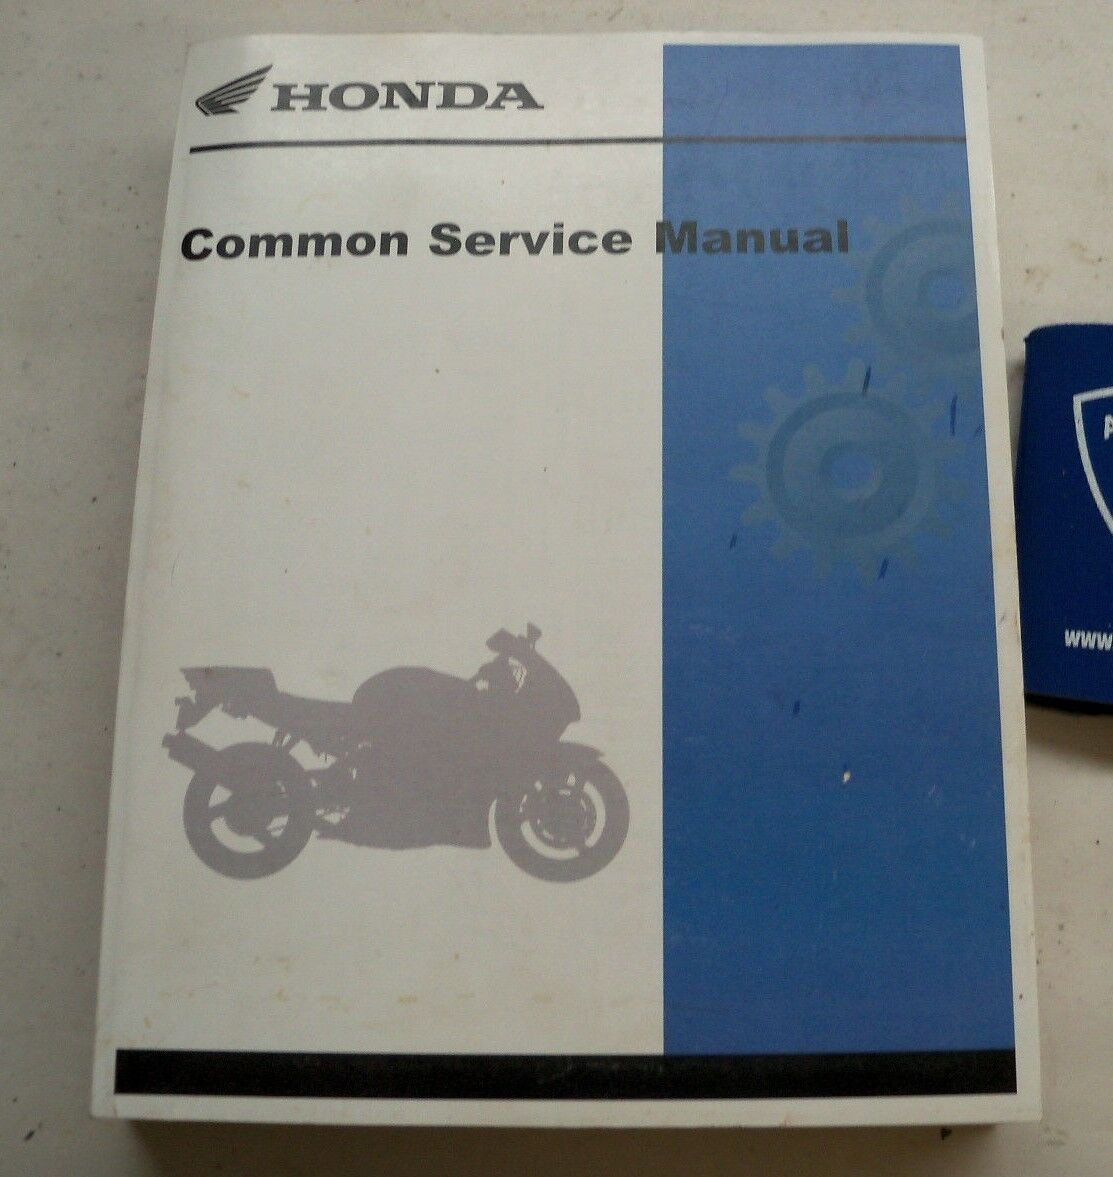 Copyright 2004 Honda Motorcycles Scooters Atv Watercraft Common Service  Manual 1 of 2Only 1 available ...